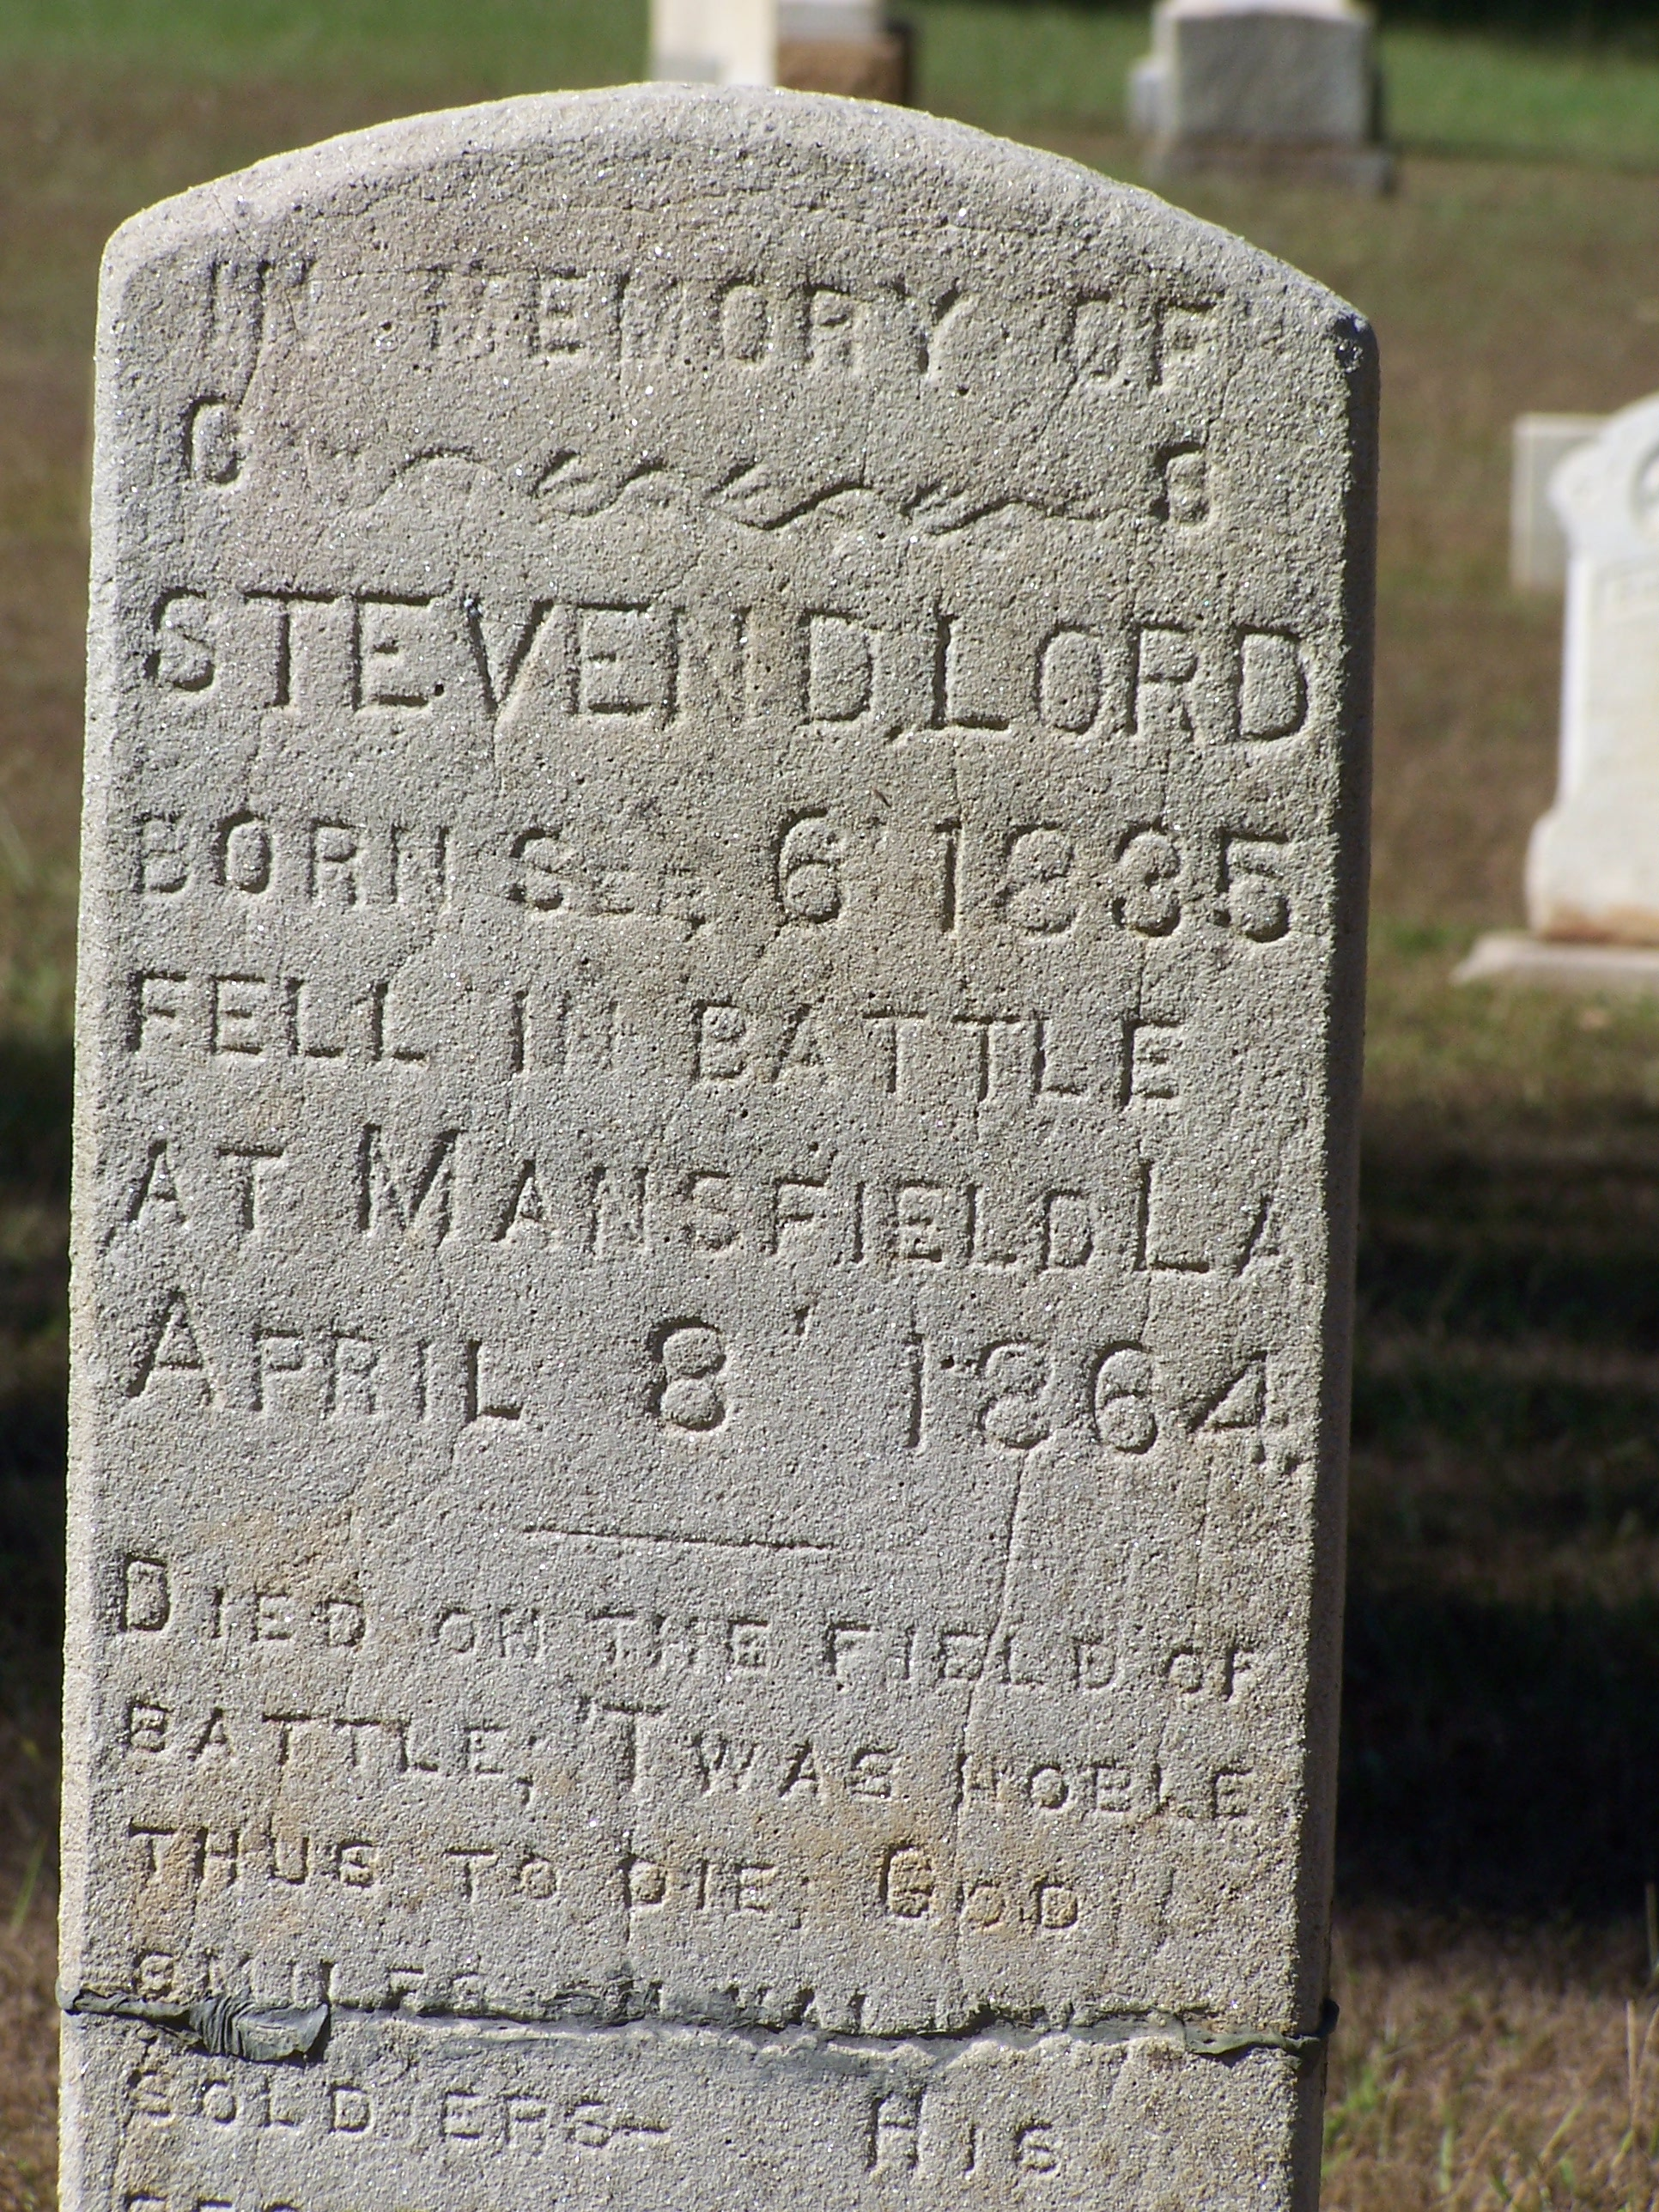 Steven Daniel Lord Sep. 6,1835-Apr. 8, 1864